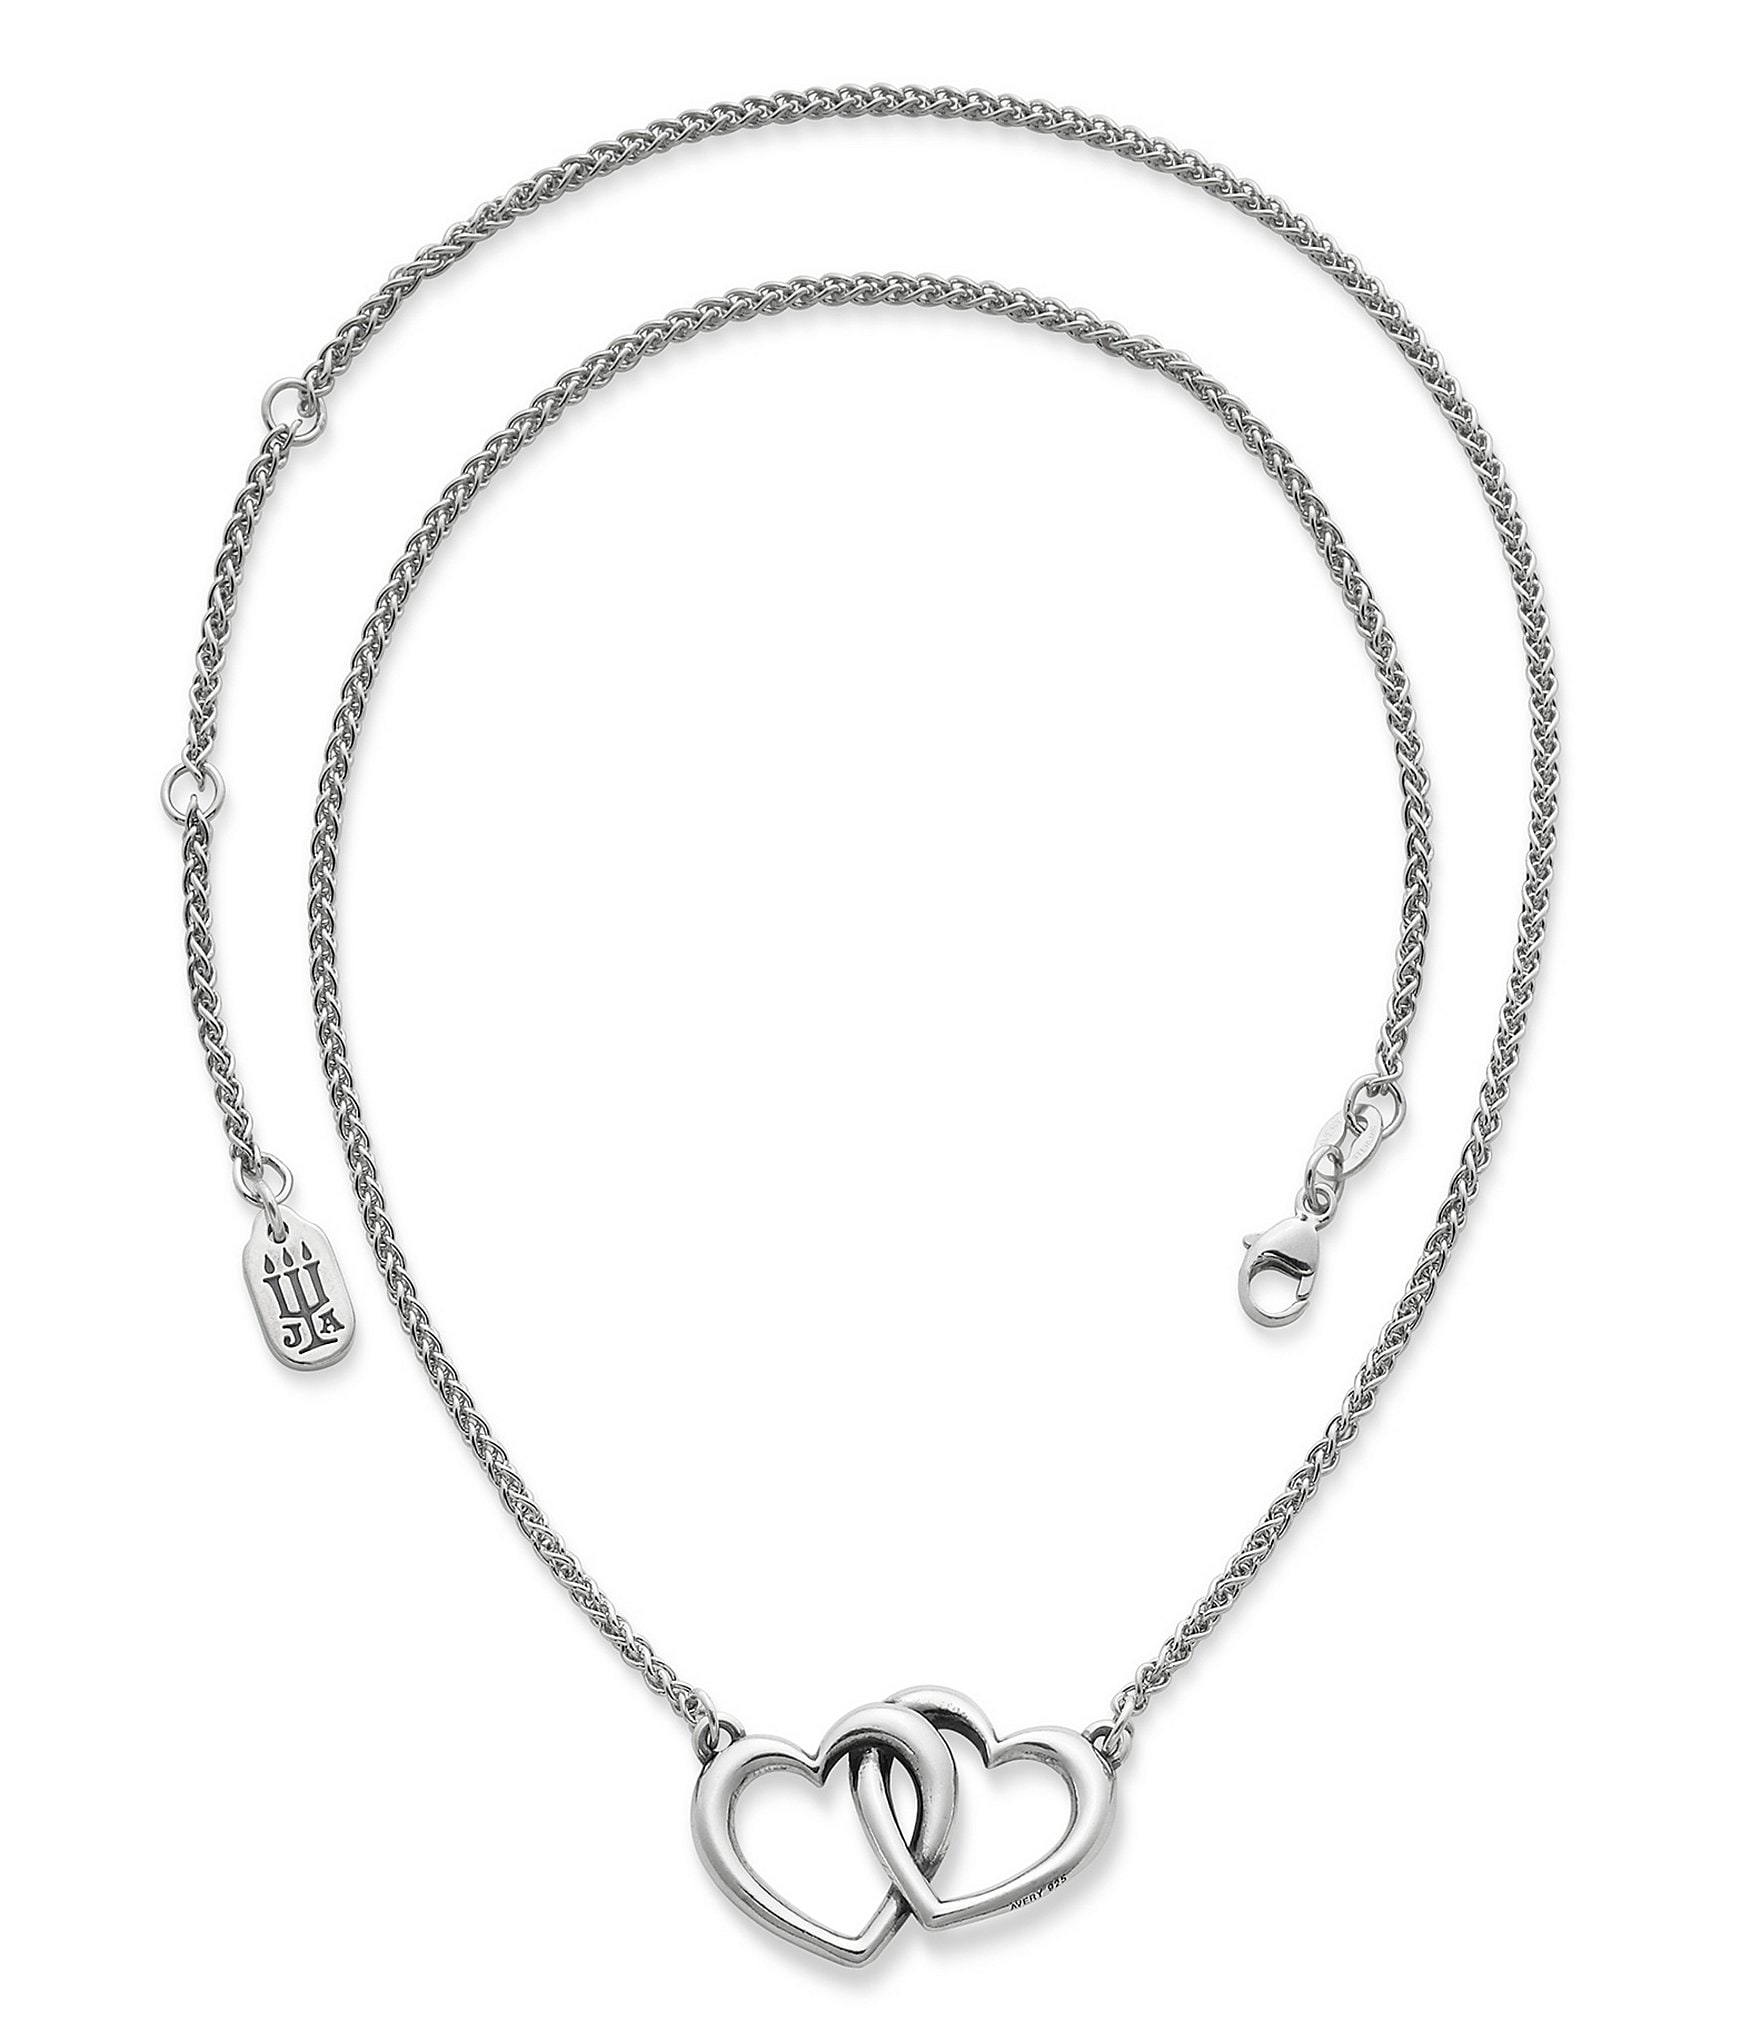 Single Line Beads: James Avery Sterling Silver Double Heart Linked Necklace